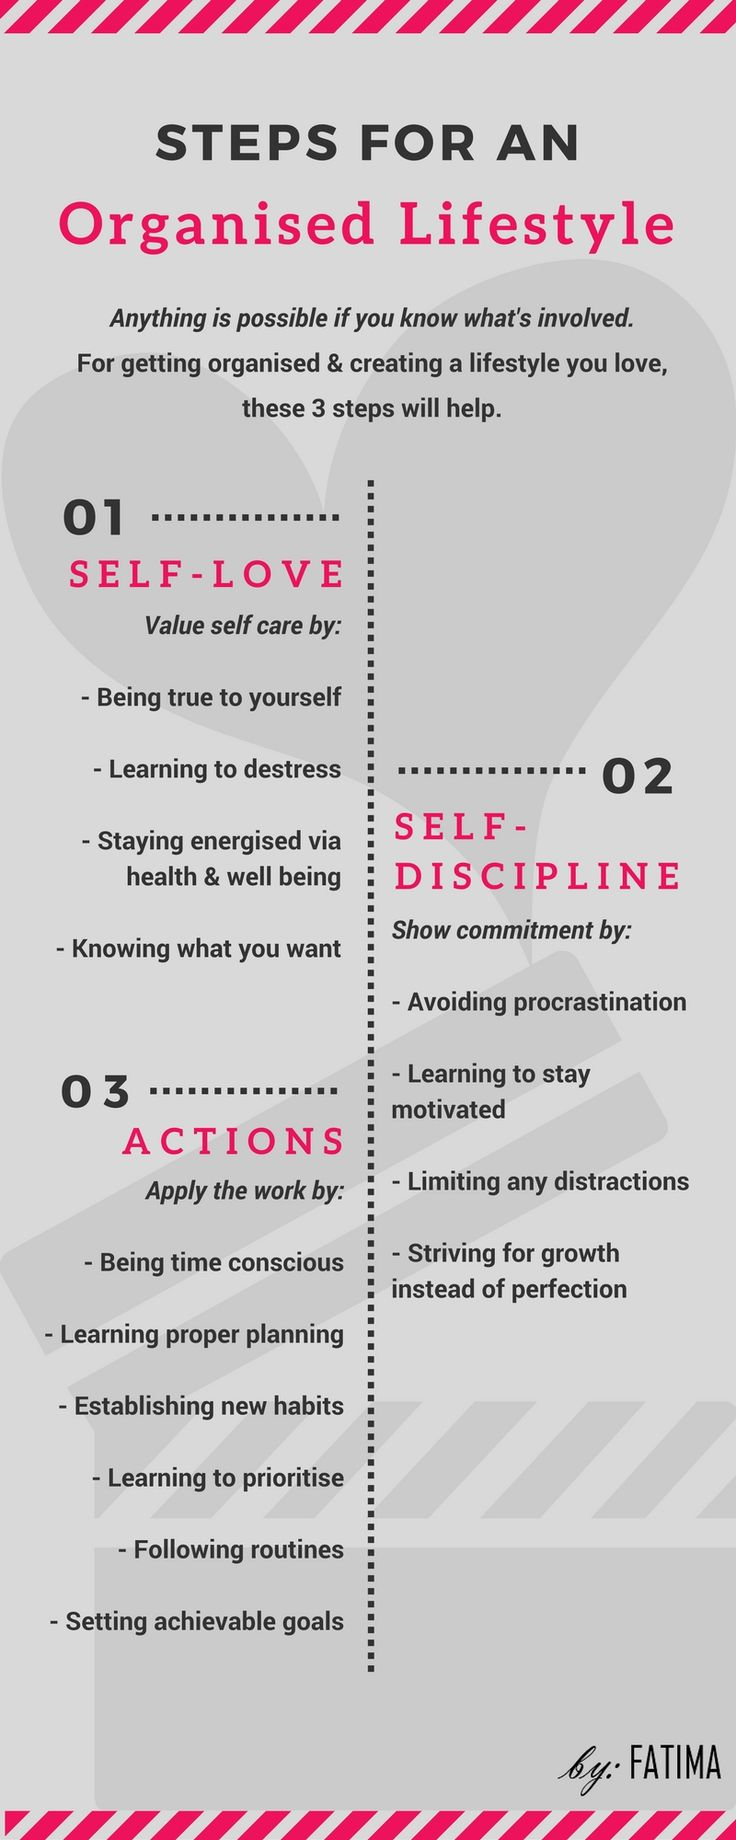 It is true when they say, you need to look after yourself first before you can care for others or do anything well. Self-love isn't only about loving who you are (faults & all), its also about learning ways to destress, find the energy you need & knowing what you want in life.